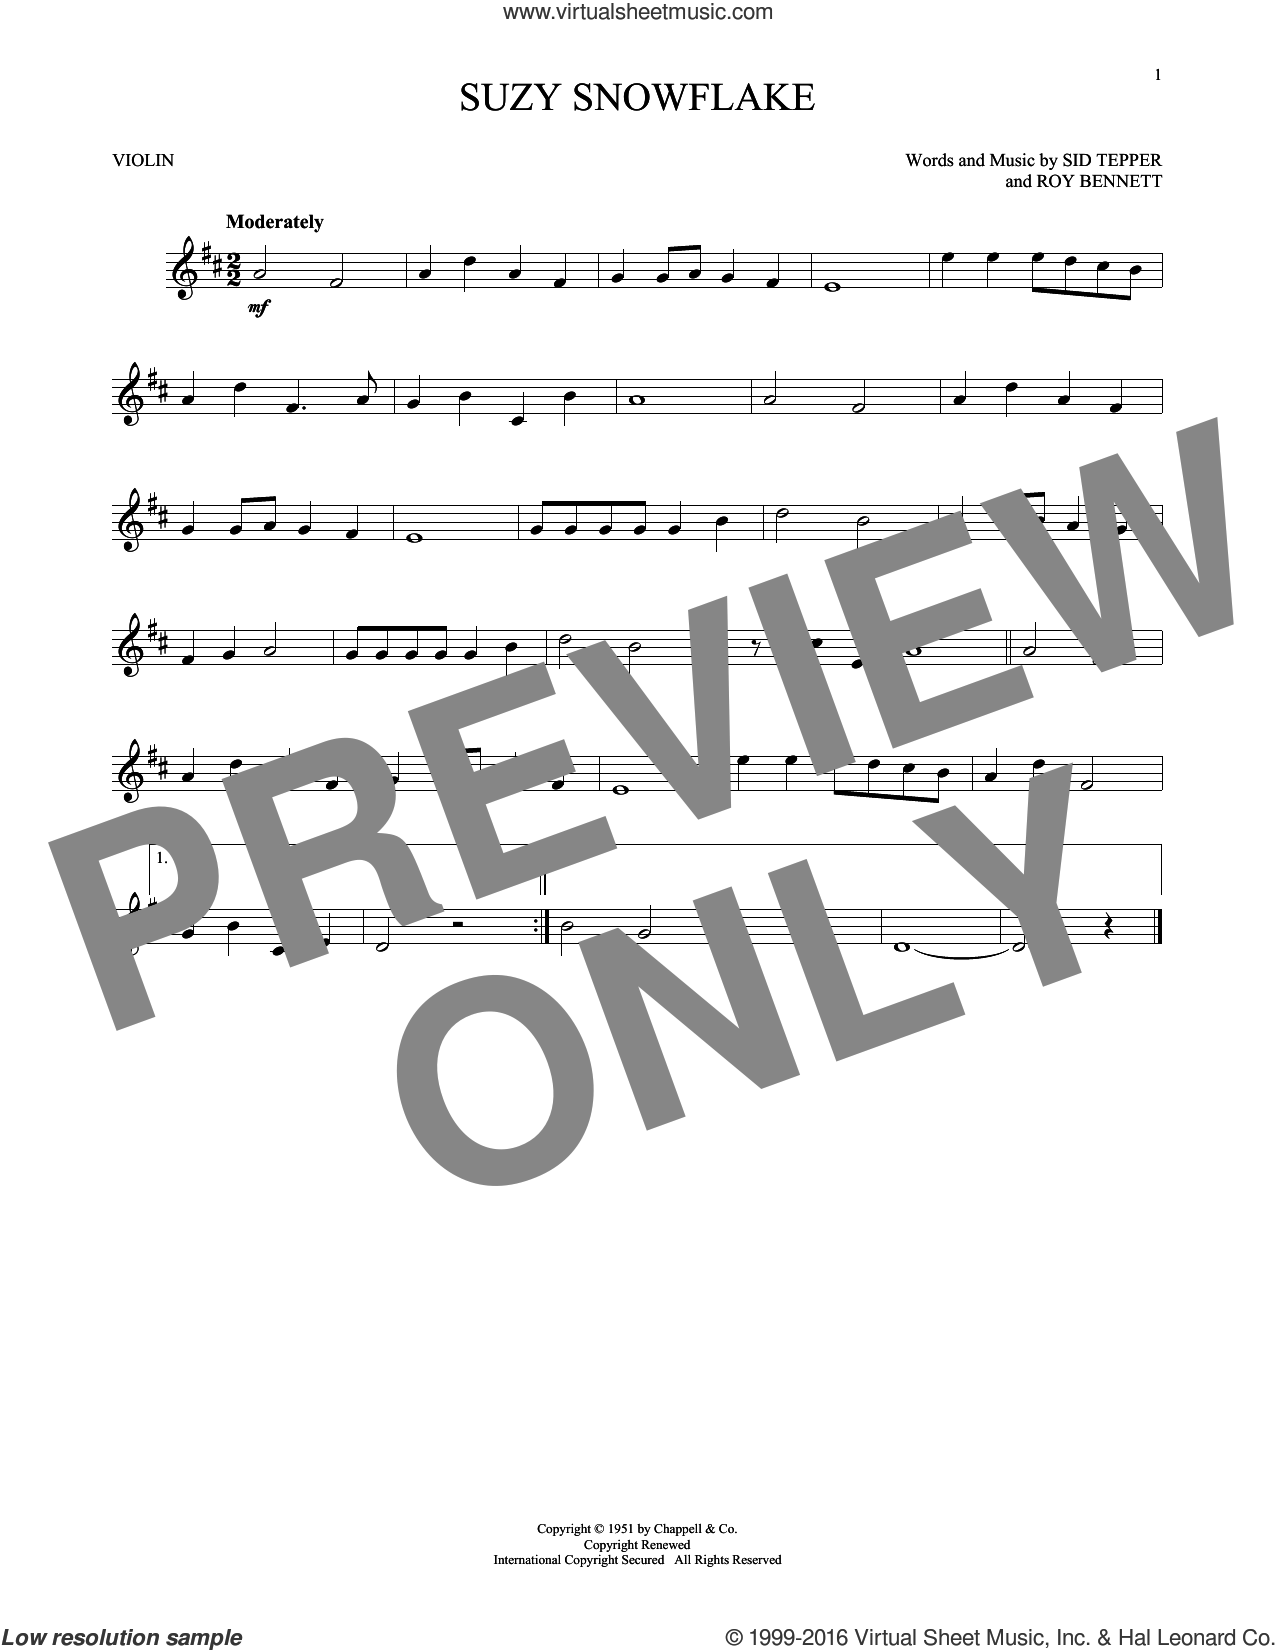 Suzy Snowflake sheet music for violin solo by Sid Tepper, Roy Bennett and Sid Tepper and Roy Bennett, intermediate skill level